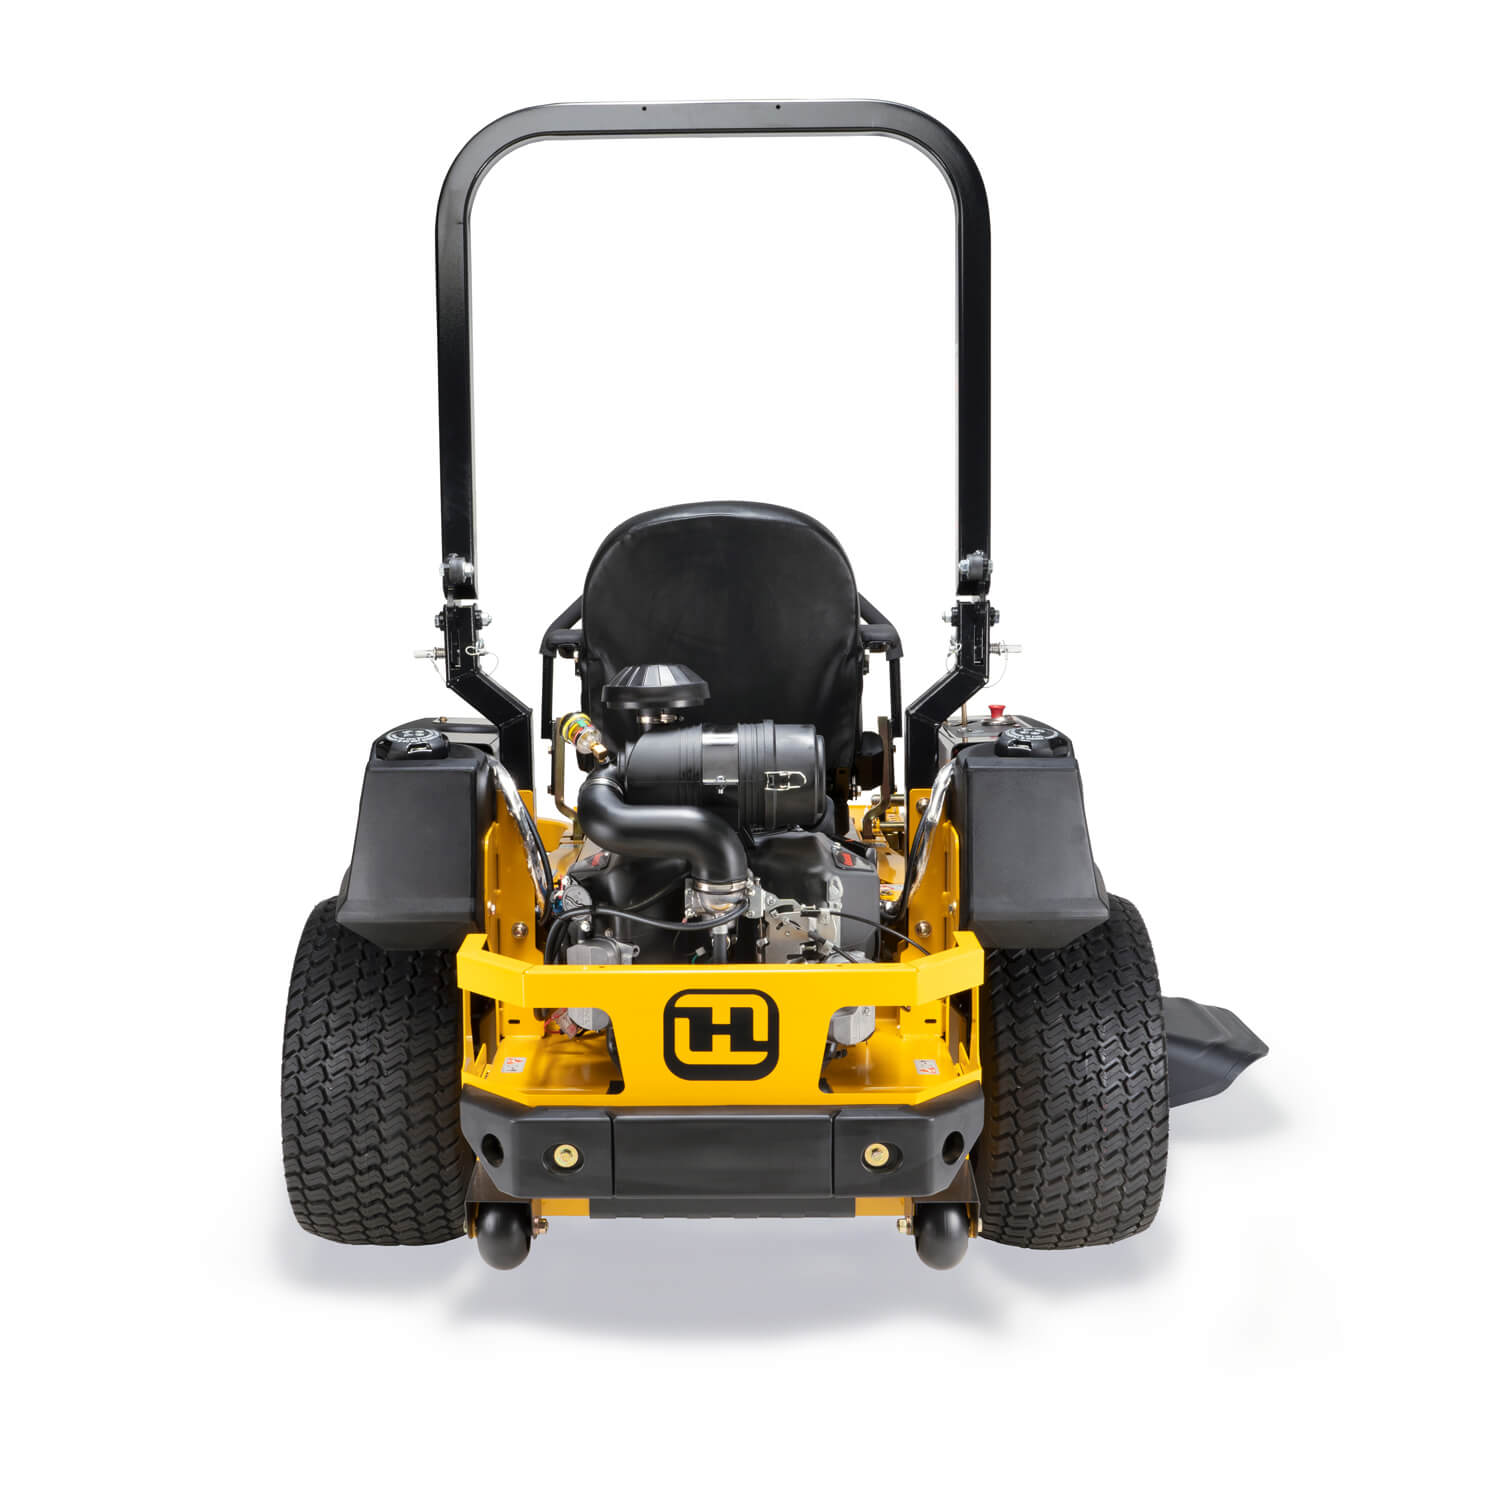 Image of the rear of a yellow zero-turn mower